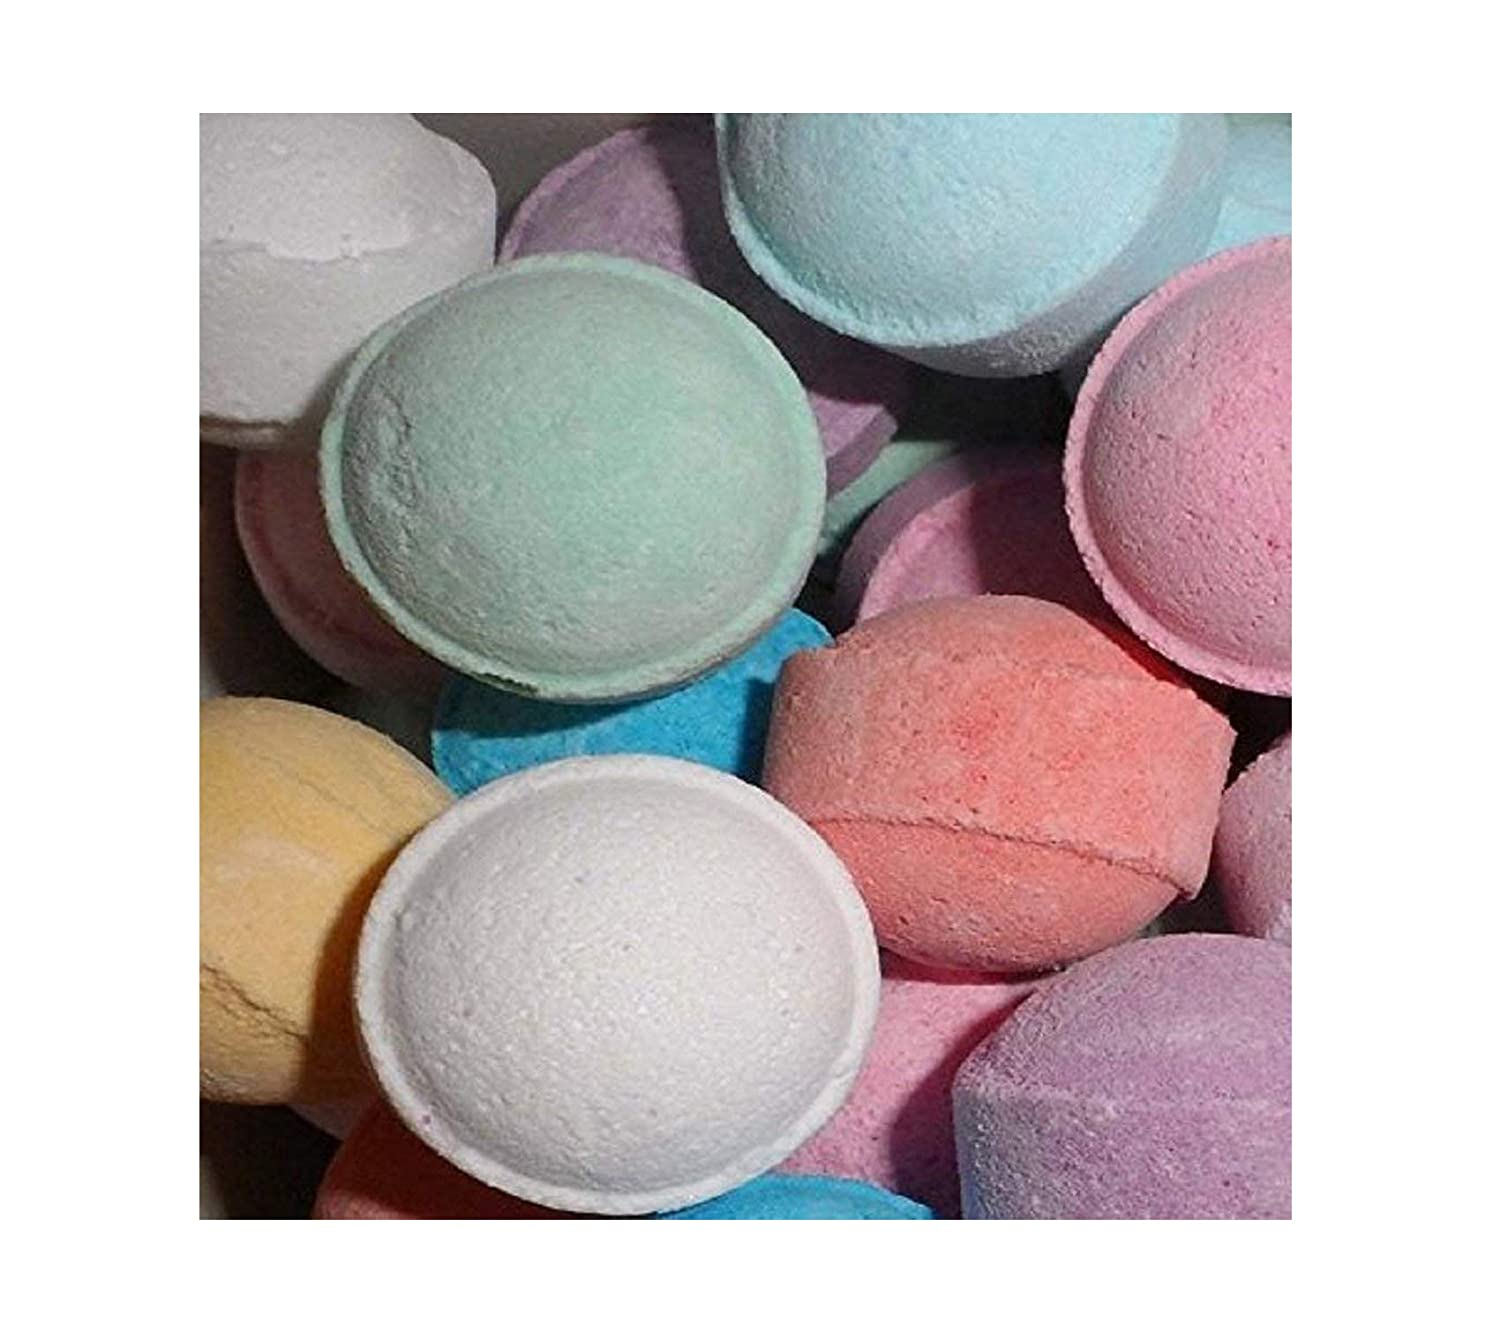 Chill Pill Mini Marble Bath Bomb - Wedding Favours Party Gifts - New Fragrances (10 x Mango) Sweet Experience